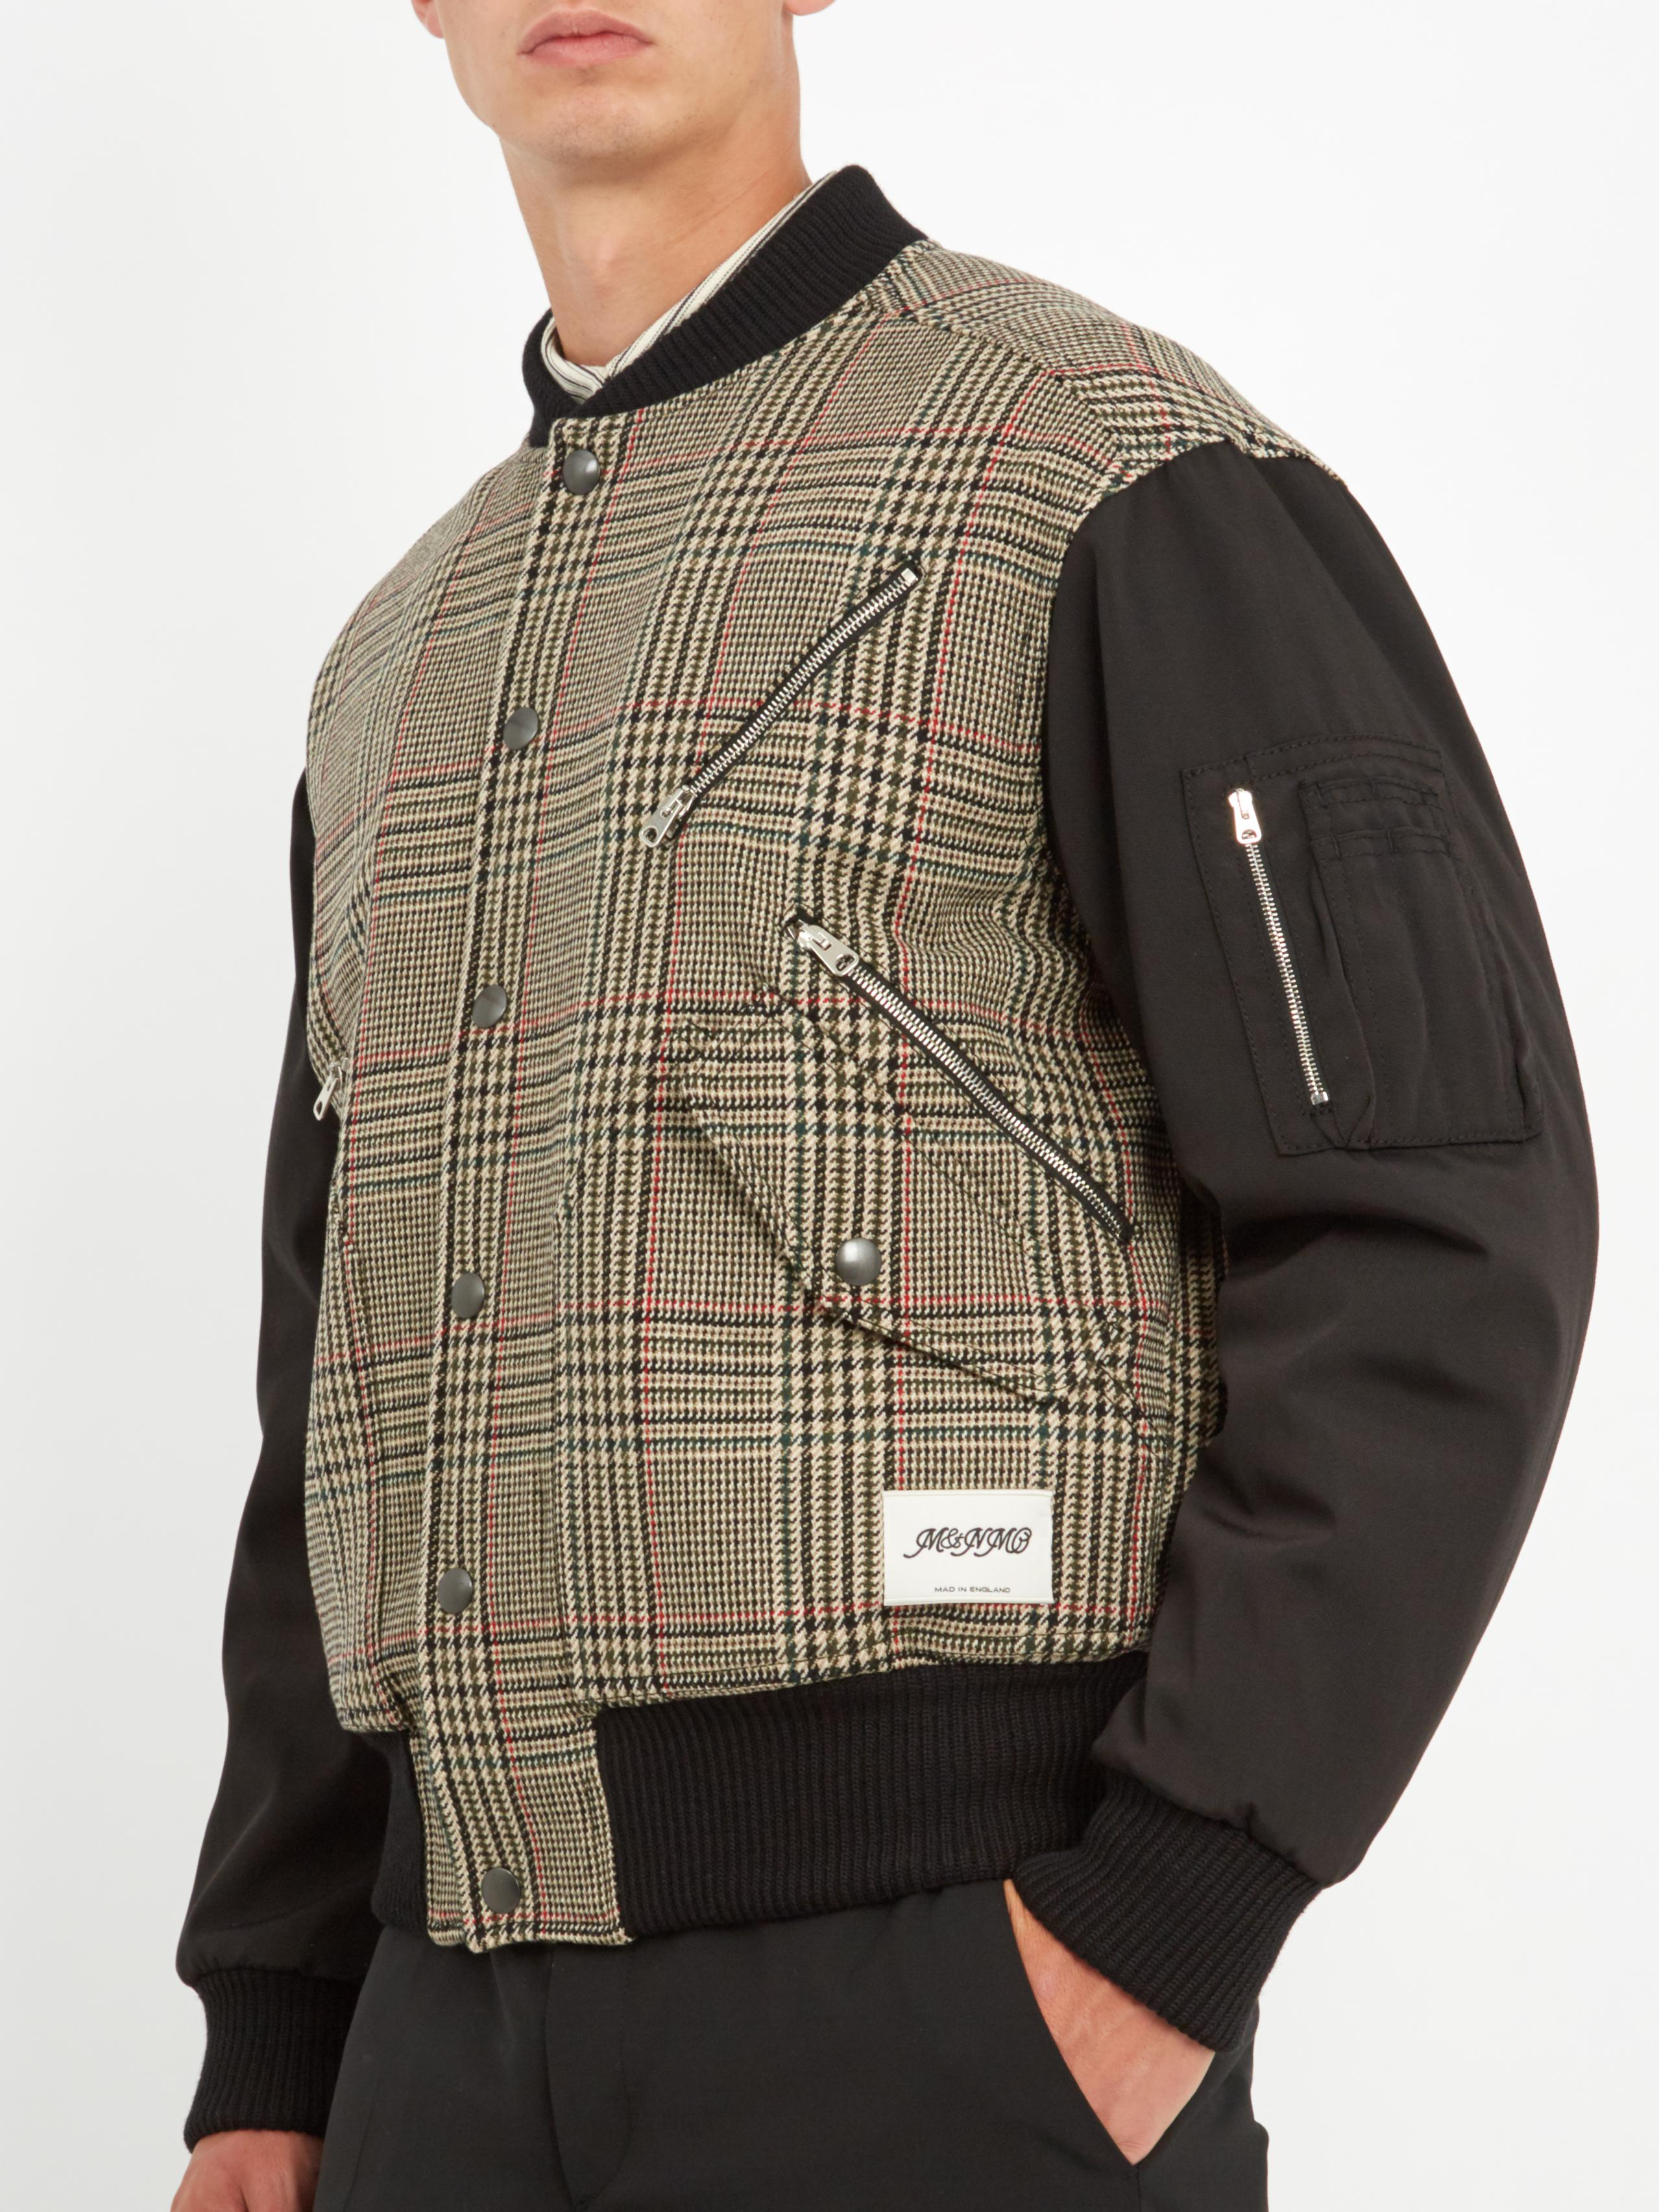 c0a81556e Stella McCartney Contrasting Checked Wool-blend Bomber Jacket for ...